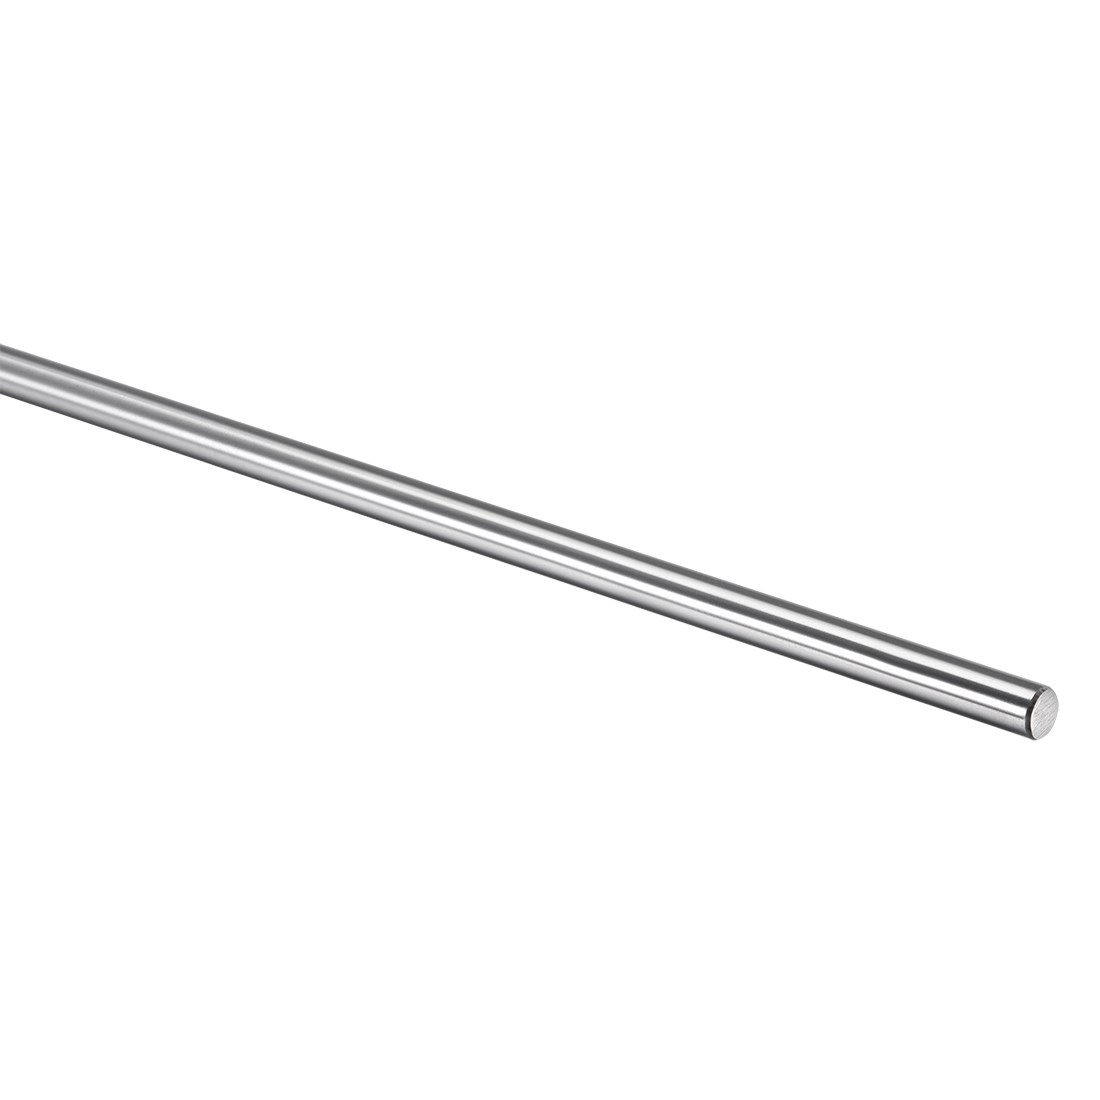 8mm x 352mm Hardened Rod Chrome Plated Linear Motion Shaft / Guide